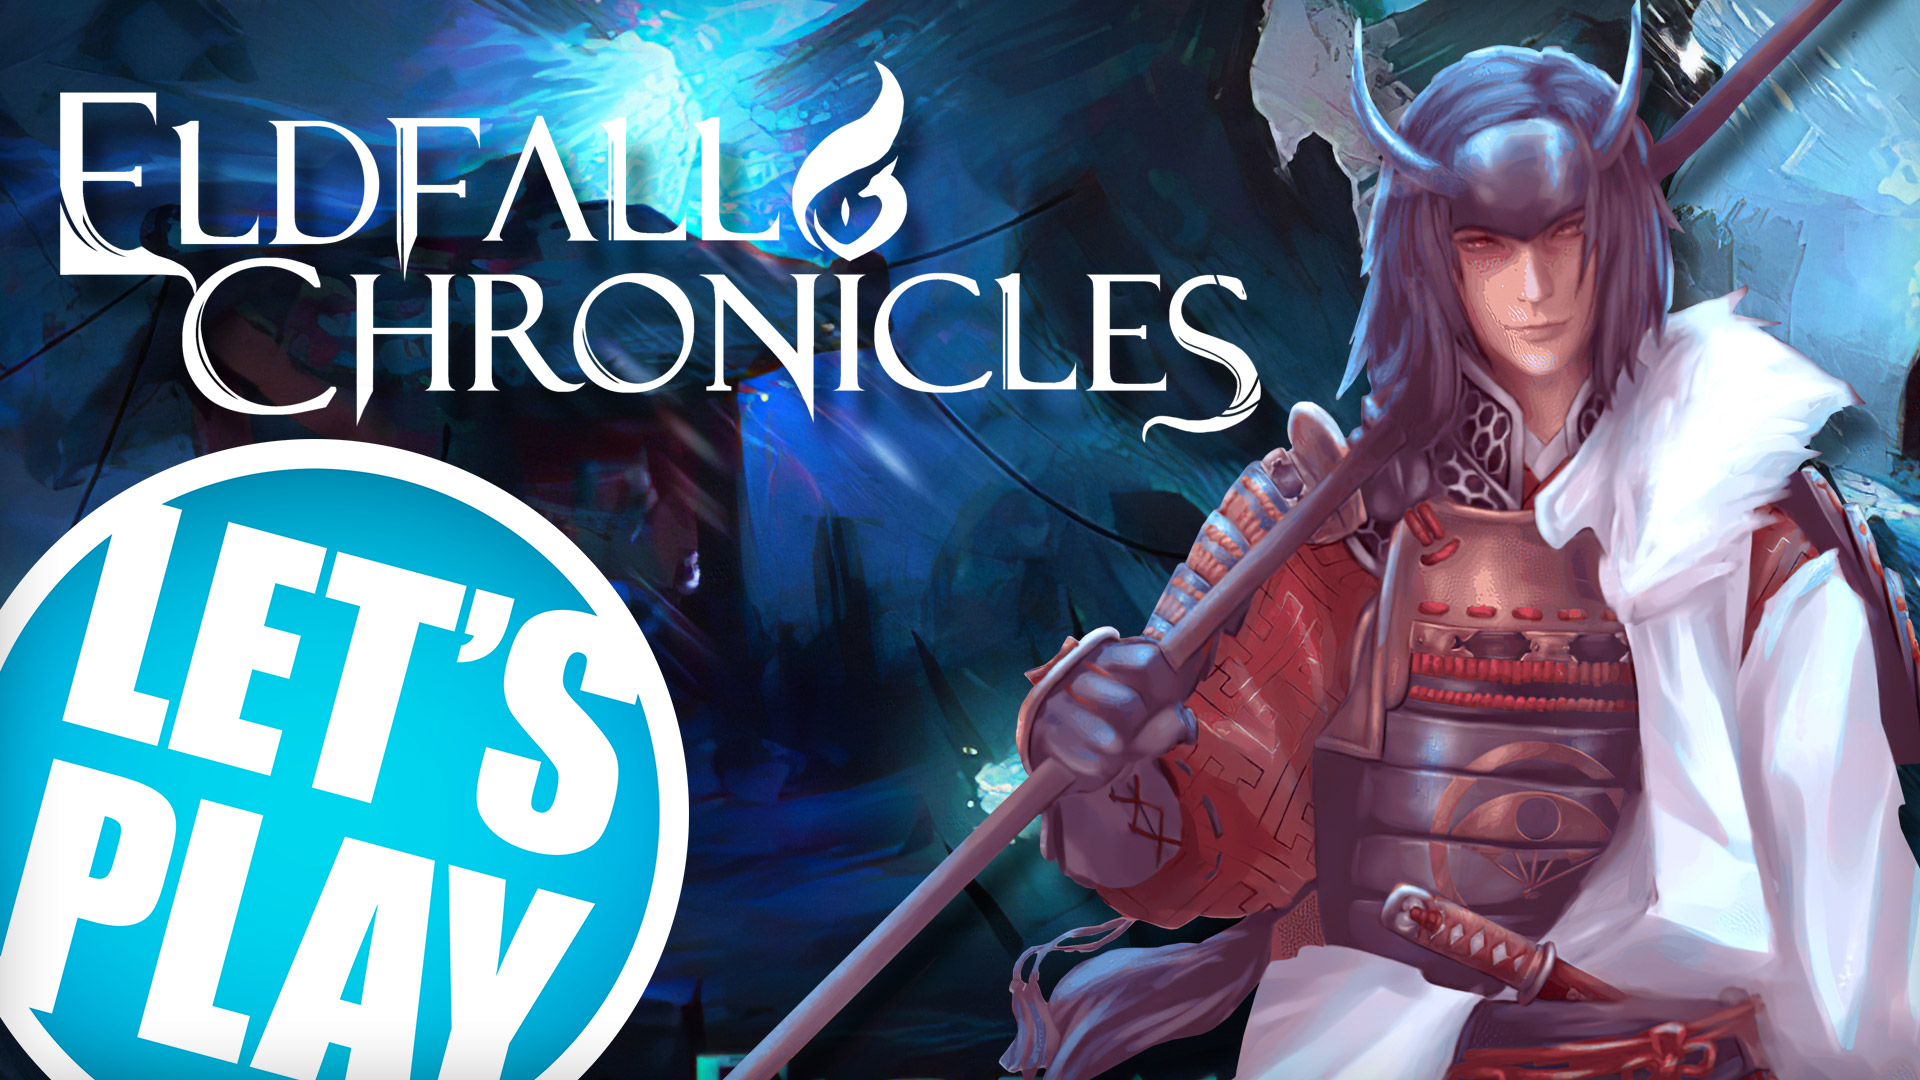 Let's-Play-Eldfall-Chronicles-coverimage-2